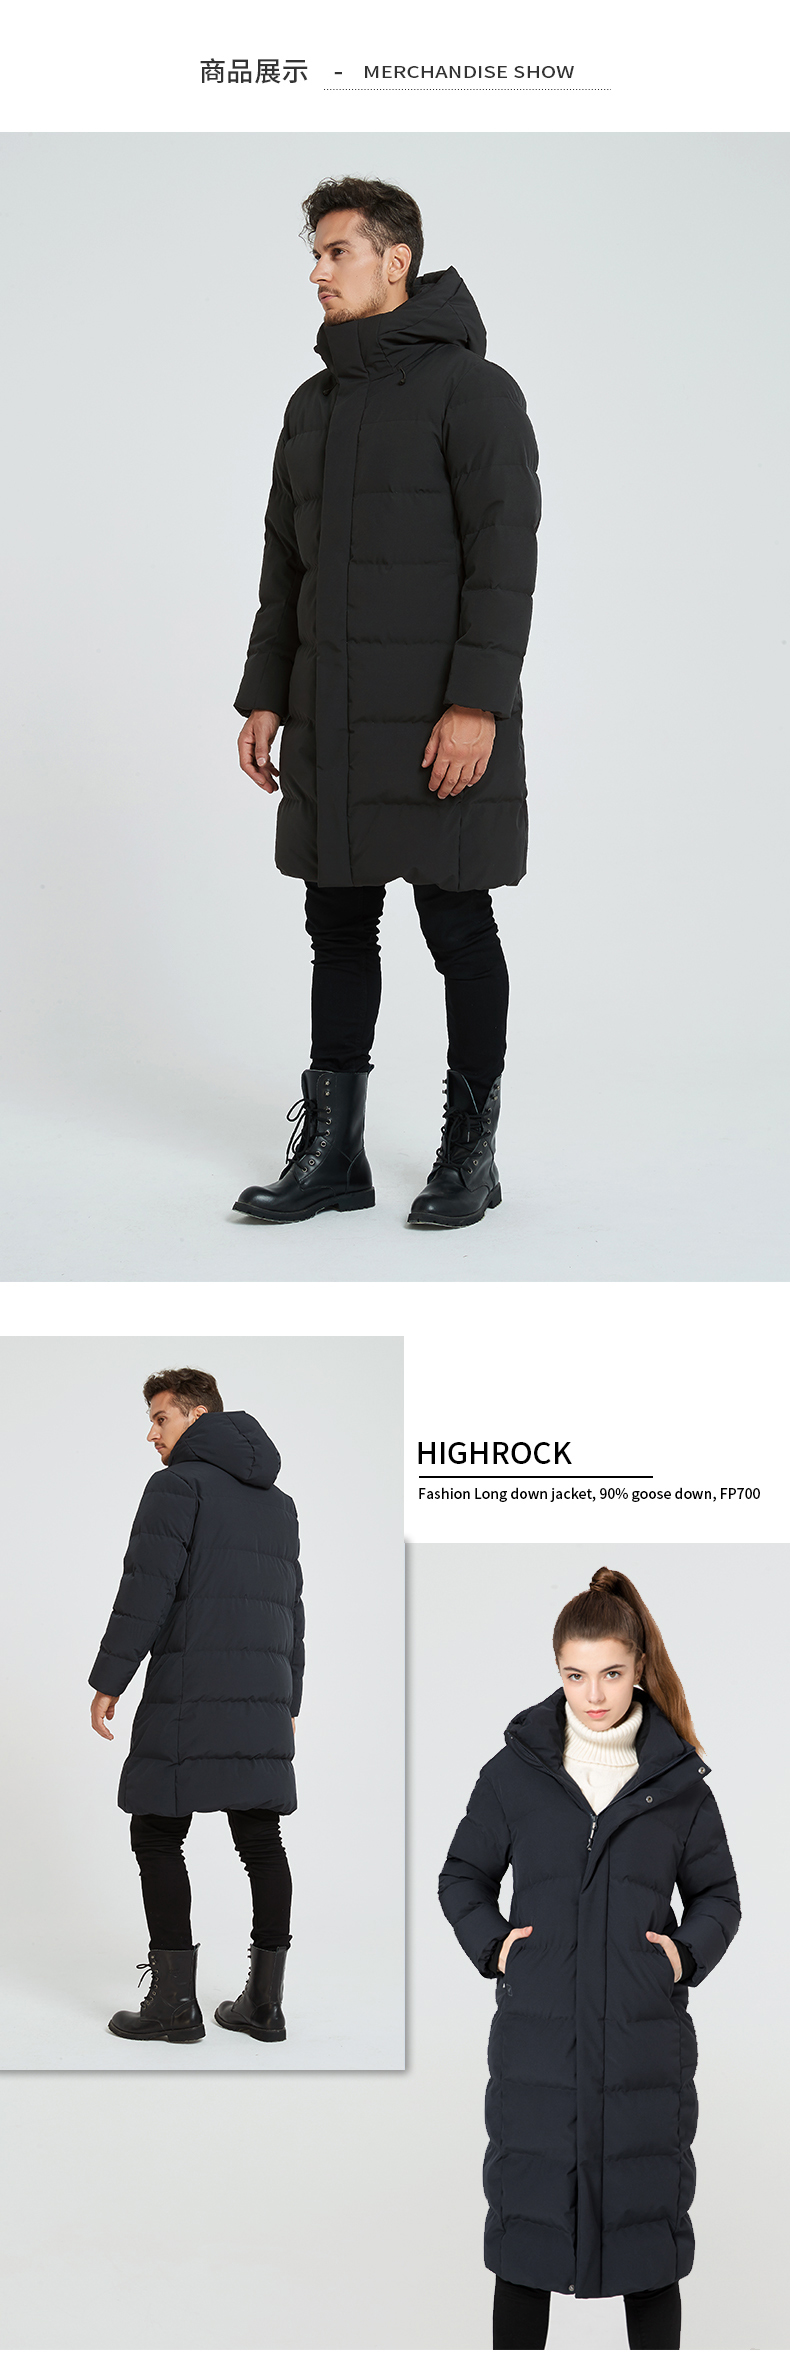 商品展示MERCHANDISE SHOWHIGHROCKFashion Long dawn jacket, 90% gnose down, FP70-推好价 | 品质生活 精选好价